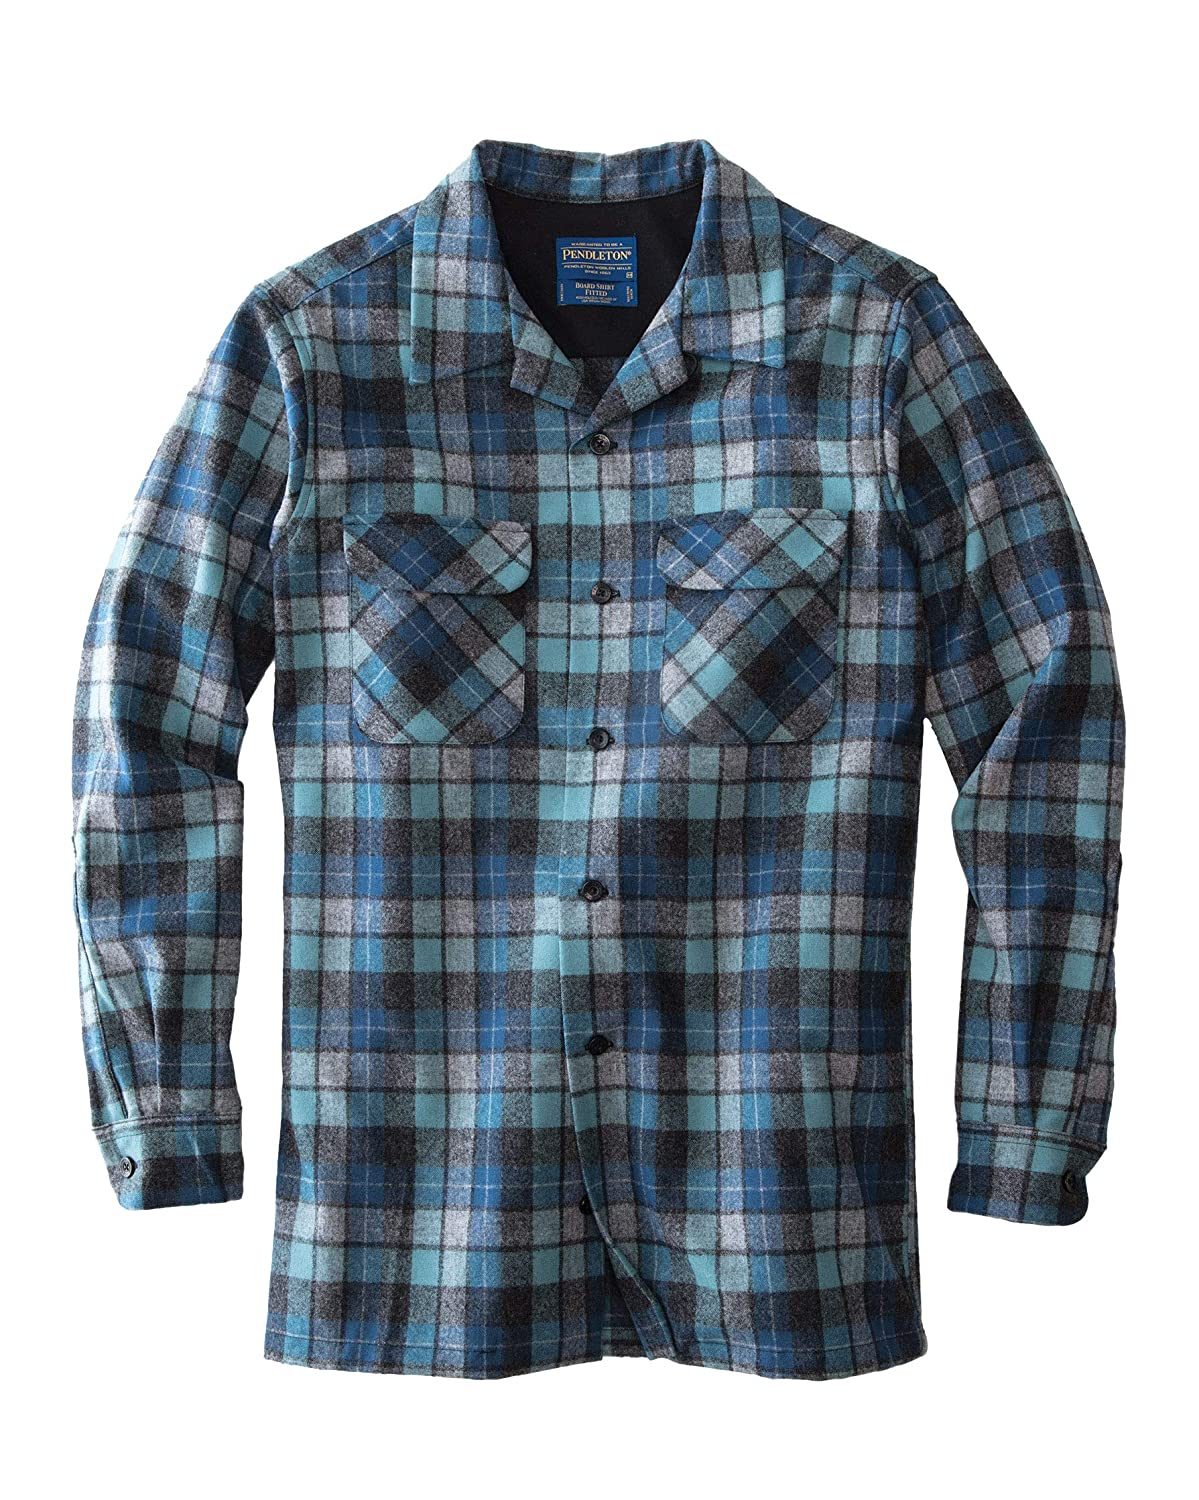 Mens Vintage Shirts – Casual, Dress, T-shirts, Polos Pendleton Mens Long Sleeve Board Shirt $104.25 AT vintagedancer.com